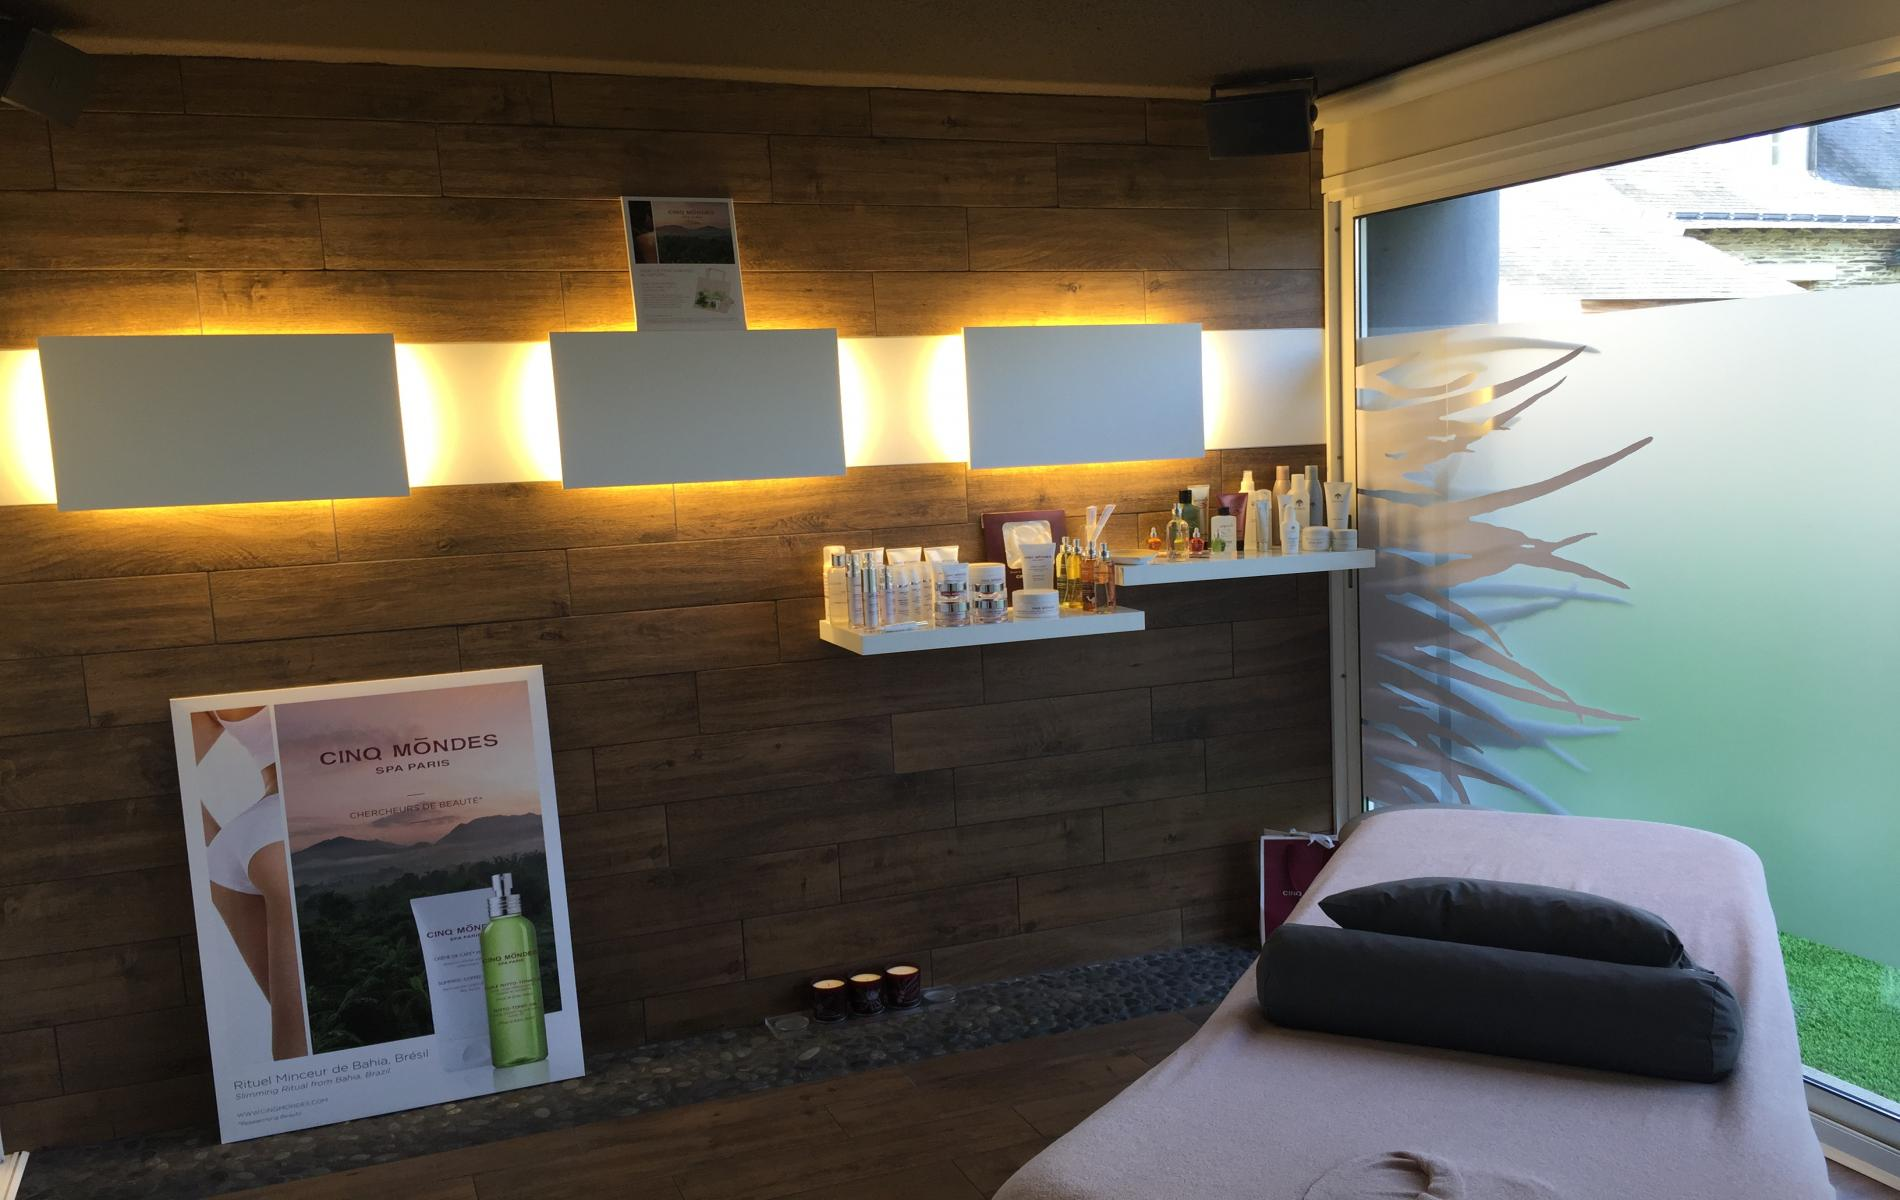 Salon De Massage Angers Salon De Massage Angers